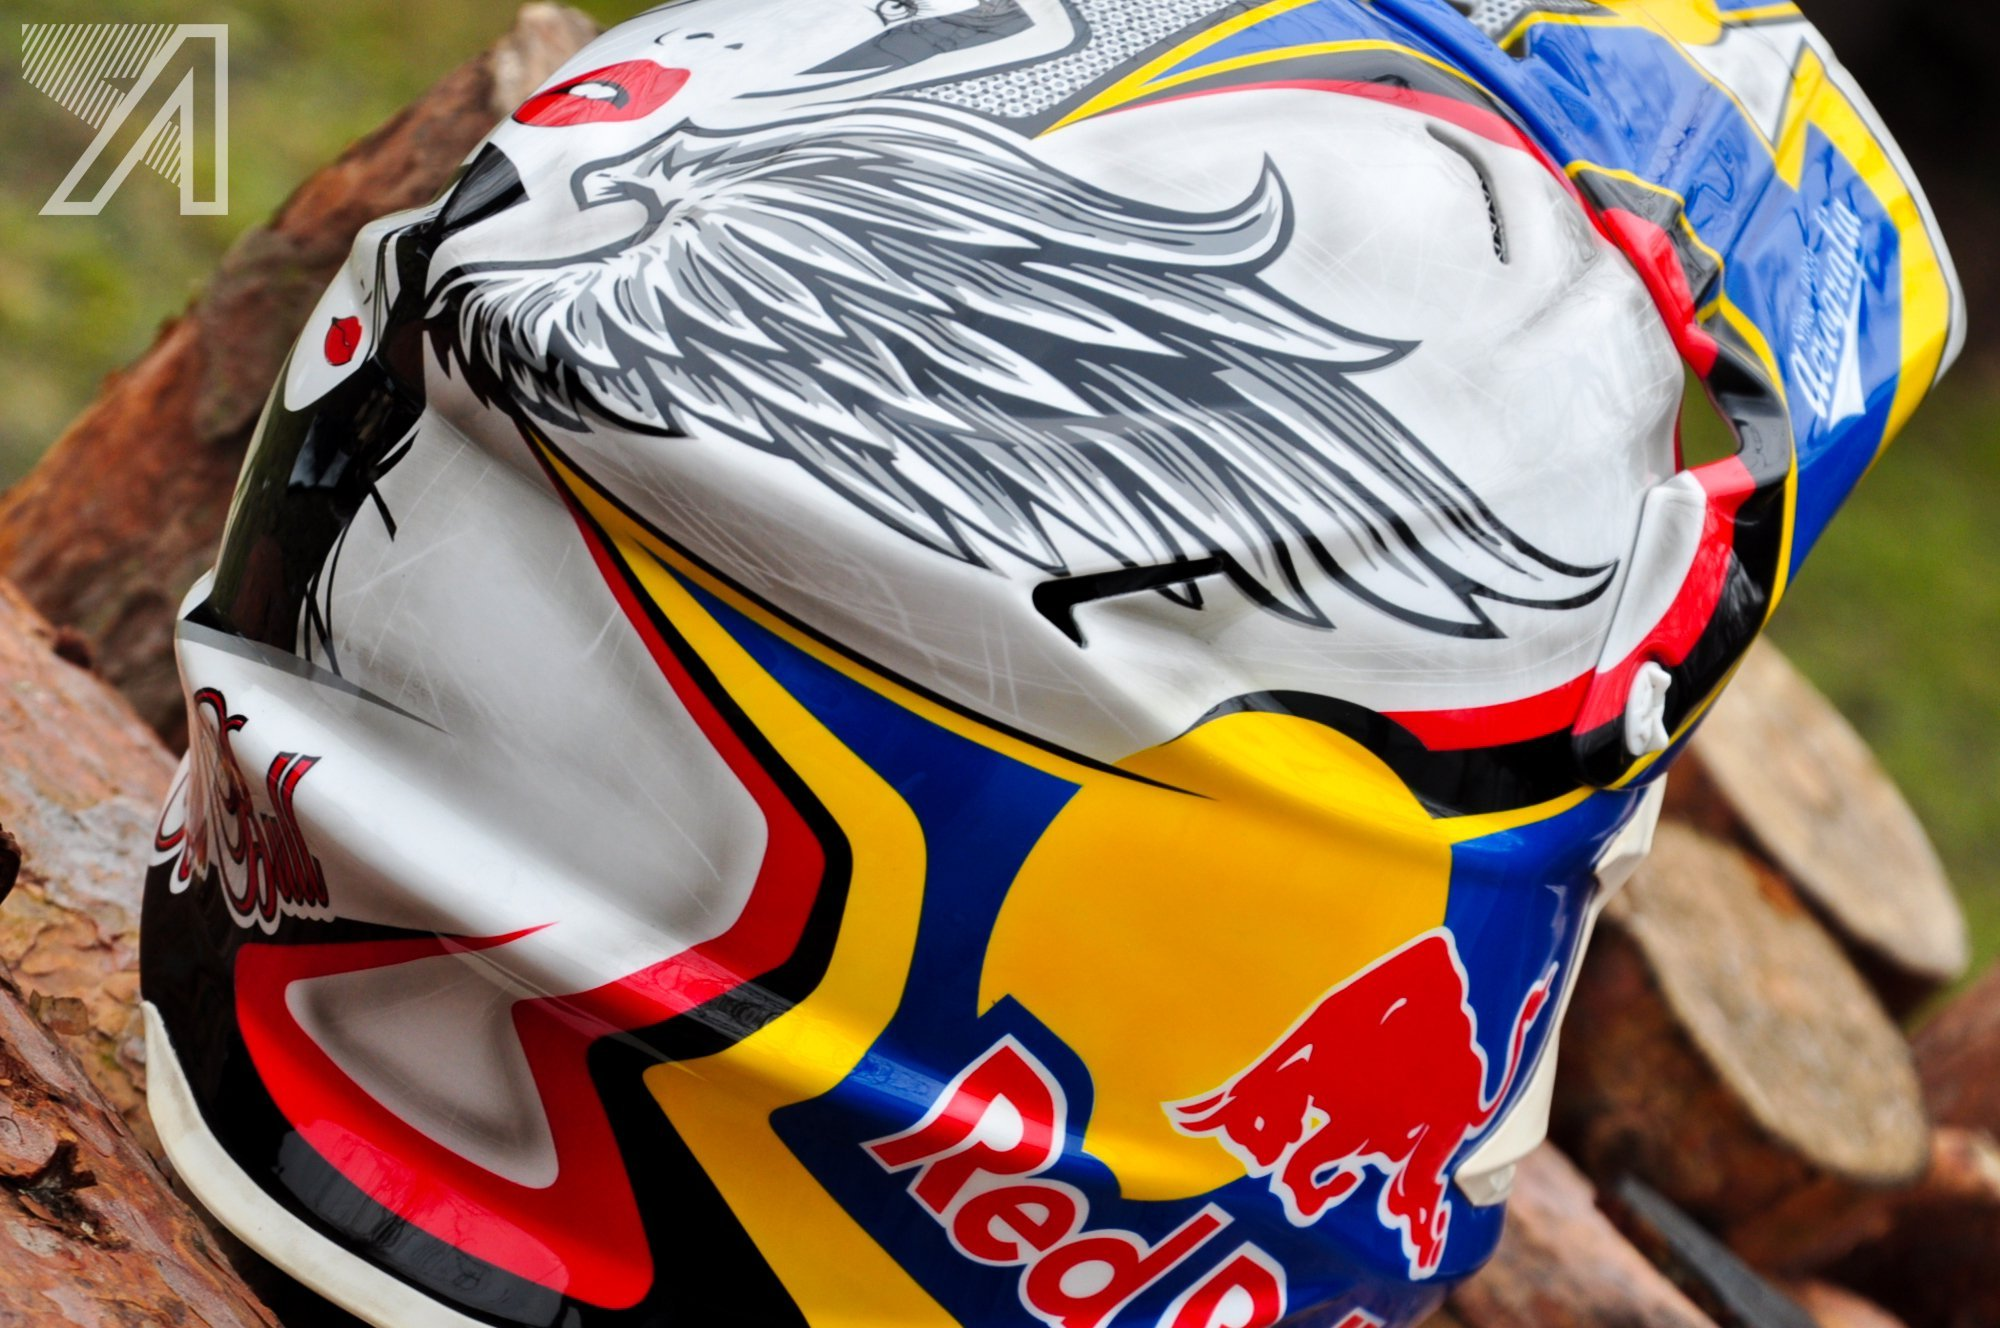 2016-10::1476139182-red-bull-enduro-5.jpg